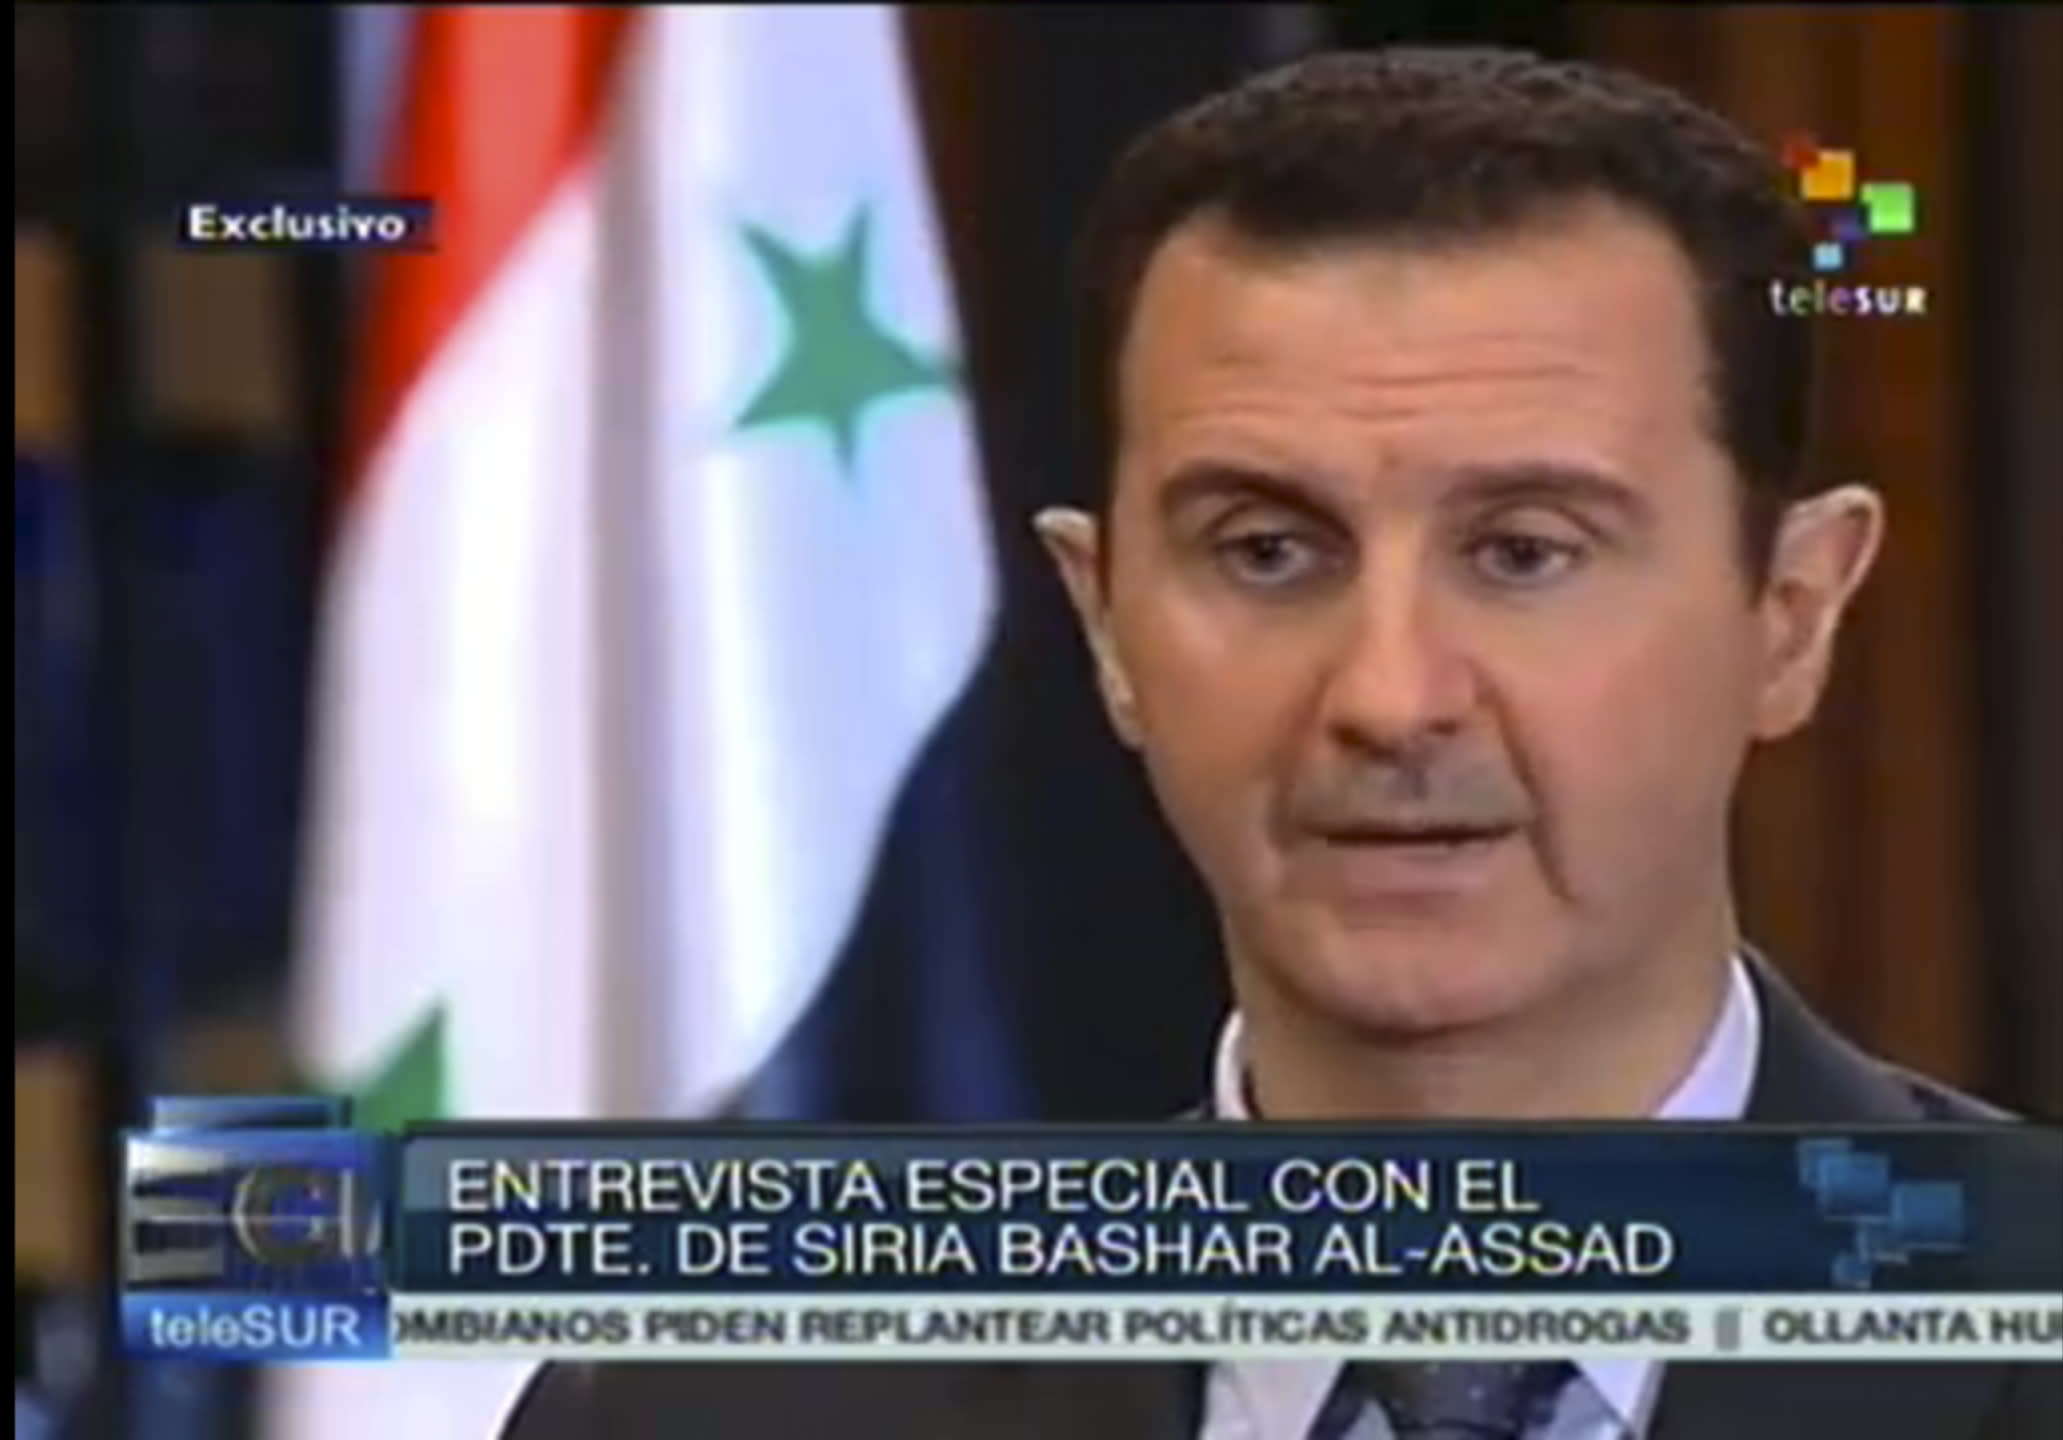 In this frame grab taken from online video broadcast on Telesur television on Wednesday, Sept. 25, 2013, Syria's President Bashar Assad speaks during an interview with a Telesur reporter in Damascus, Syria. Telesur is a Latin American news channel financed primarily by Venezuela's government. (AP Photo/Telesur)